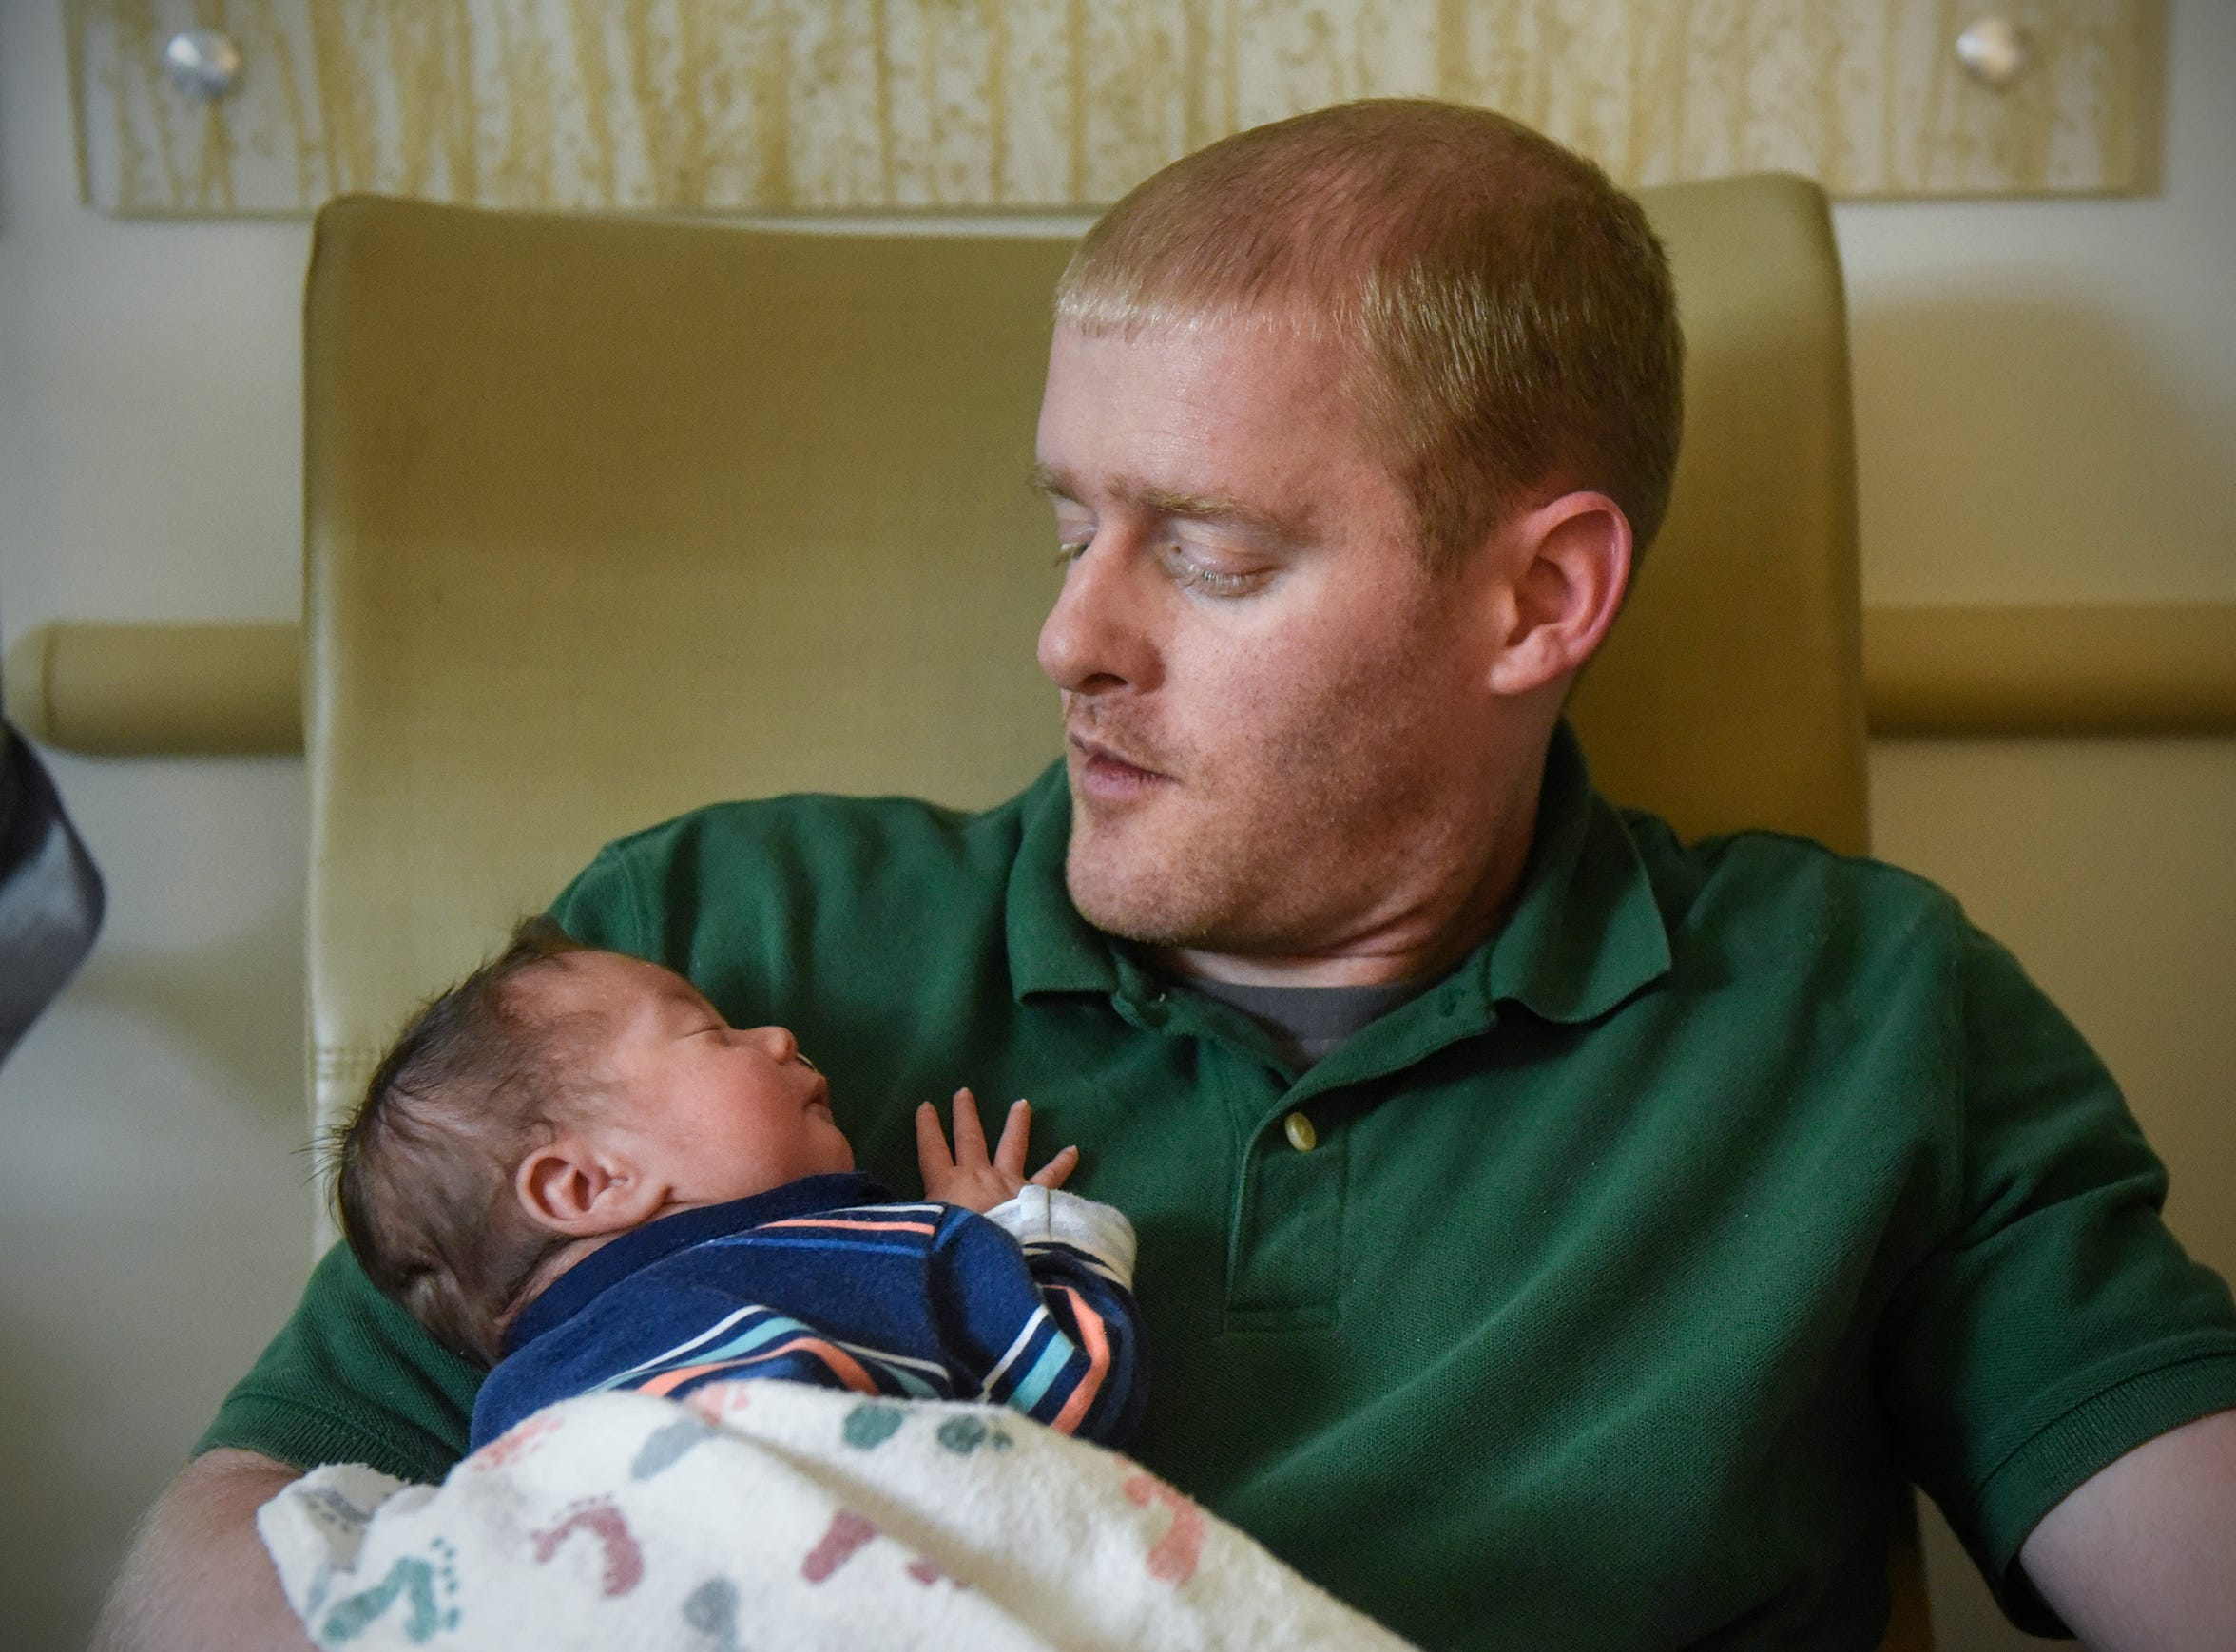 Christopher Johnson holds his son, Joshua, Wednesday, Dec. 12, at the St. Cloud Hospital's Neonatal Intensive Care Unit.